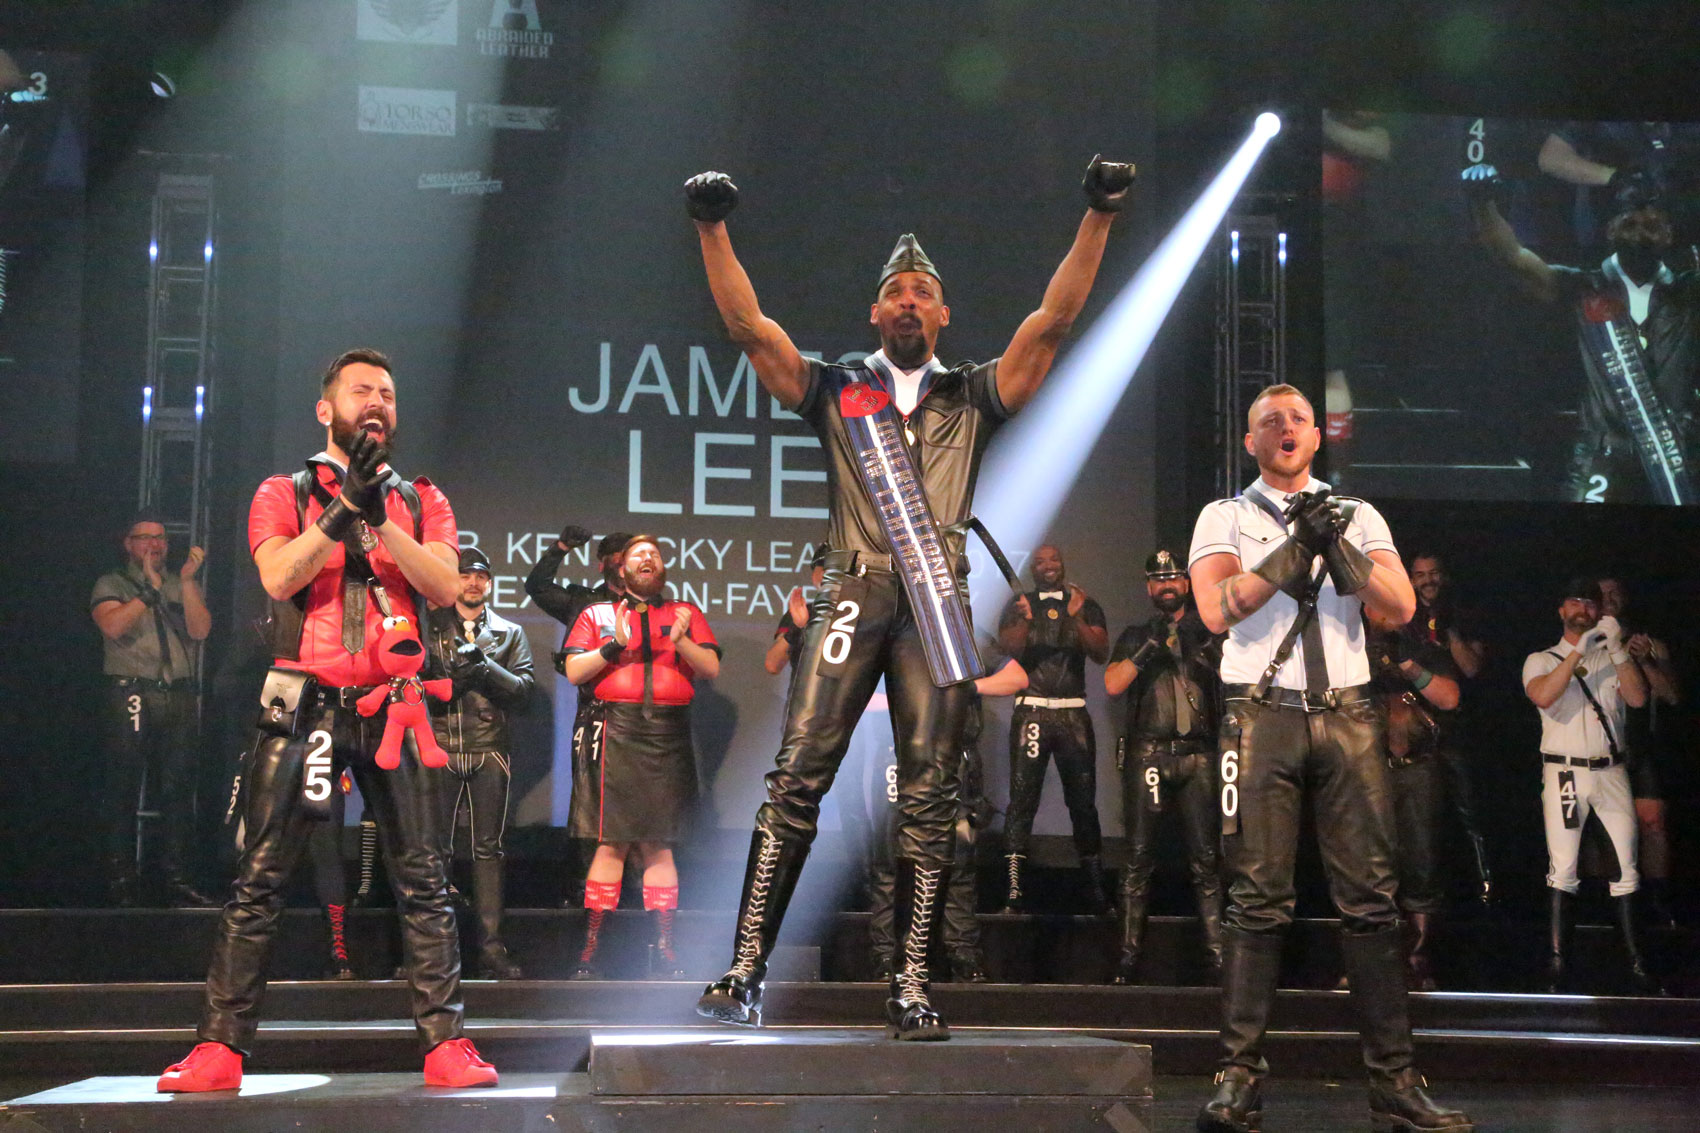 Mr Kentucky 2017 James Lee (center) named International Mr Leather 2018 with first runner up Mr Leather Belgium 2017 Sandro Cossero (left) and second runner up Mr Friendly SF 2018 Stephan Ferris (right). Photo courtesy of IML, Inc.